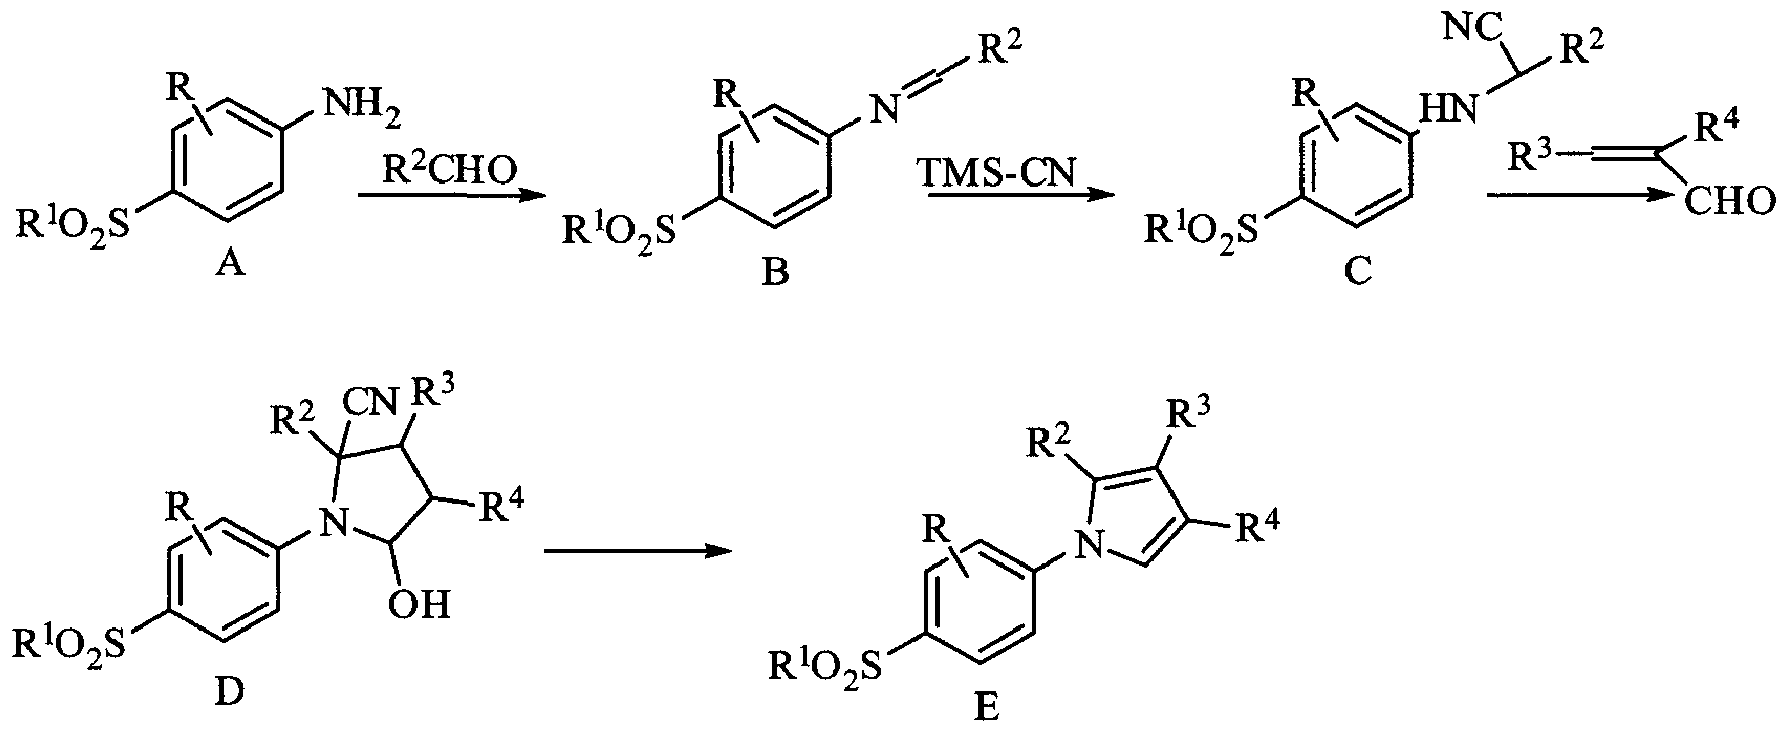 rxn of iodoethane with sodium saccharin The diels-alder reaction is a [4+2] cycloaddition in which a conjugated diene,  4/ e reaction of iodoethane with sodium saccharin, an ambident nucleophile.